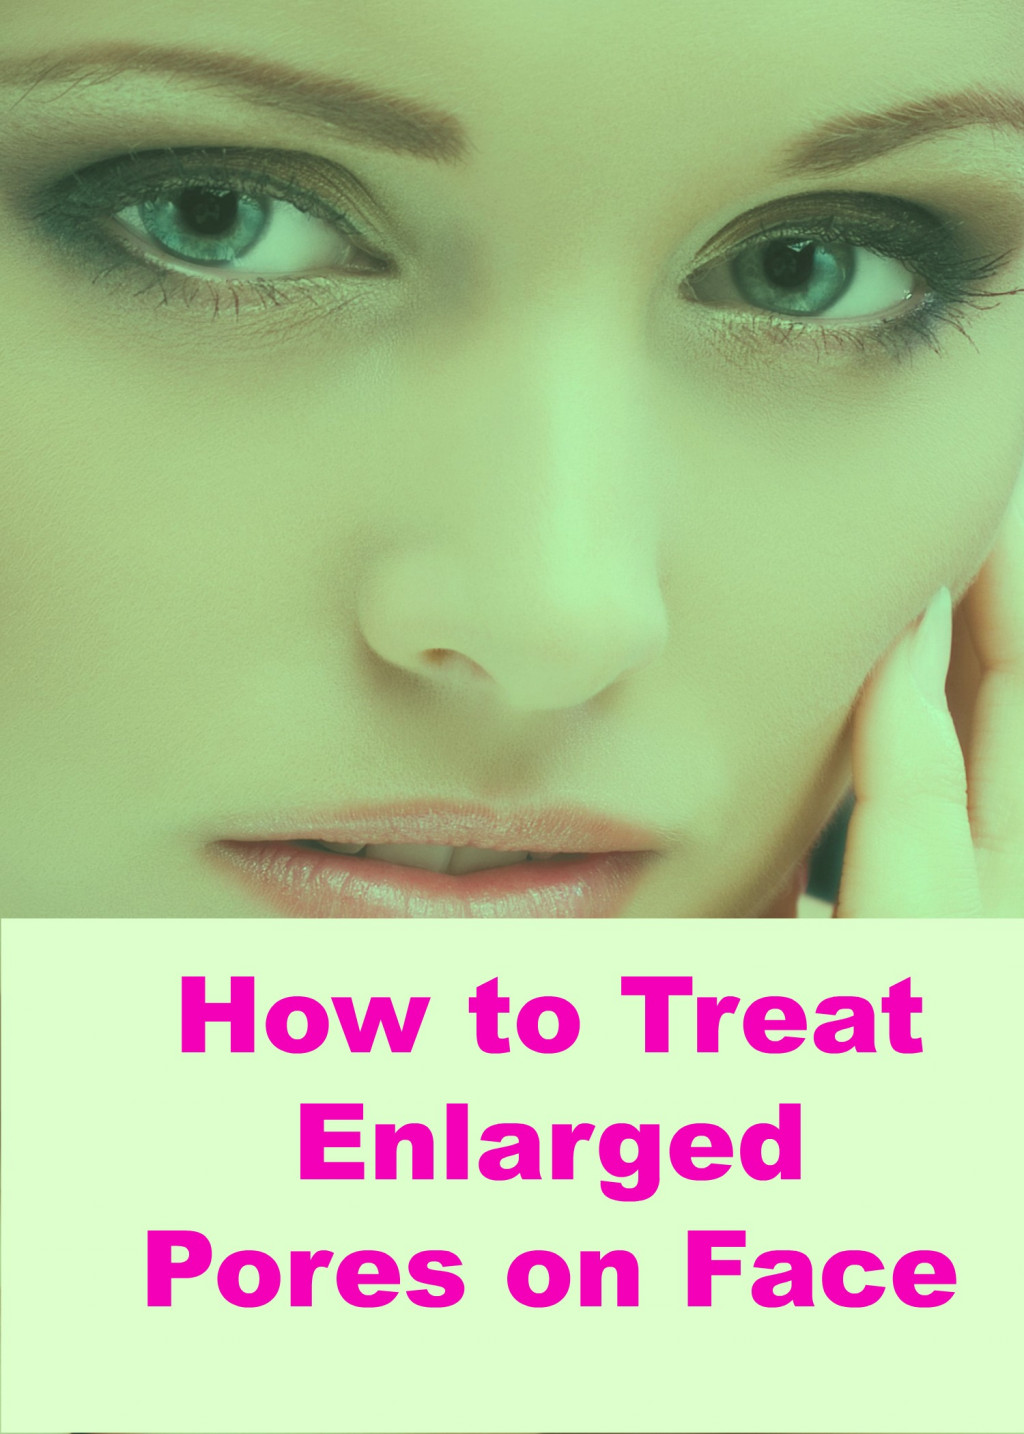 How to Treat Enlarged Pores On Face